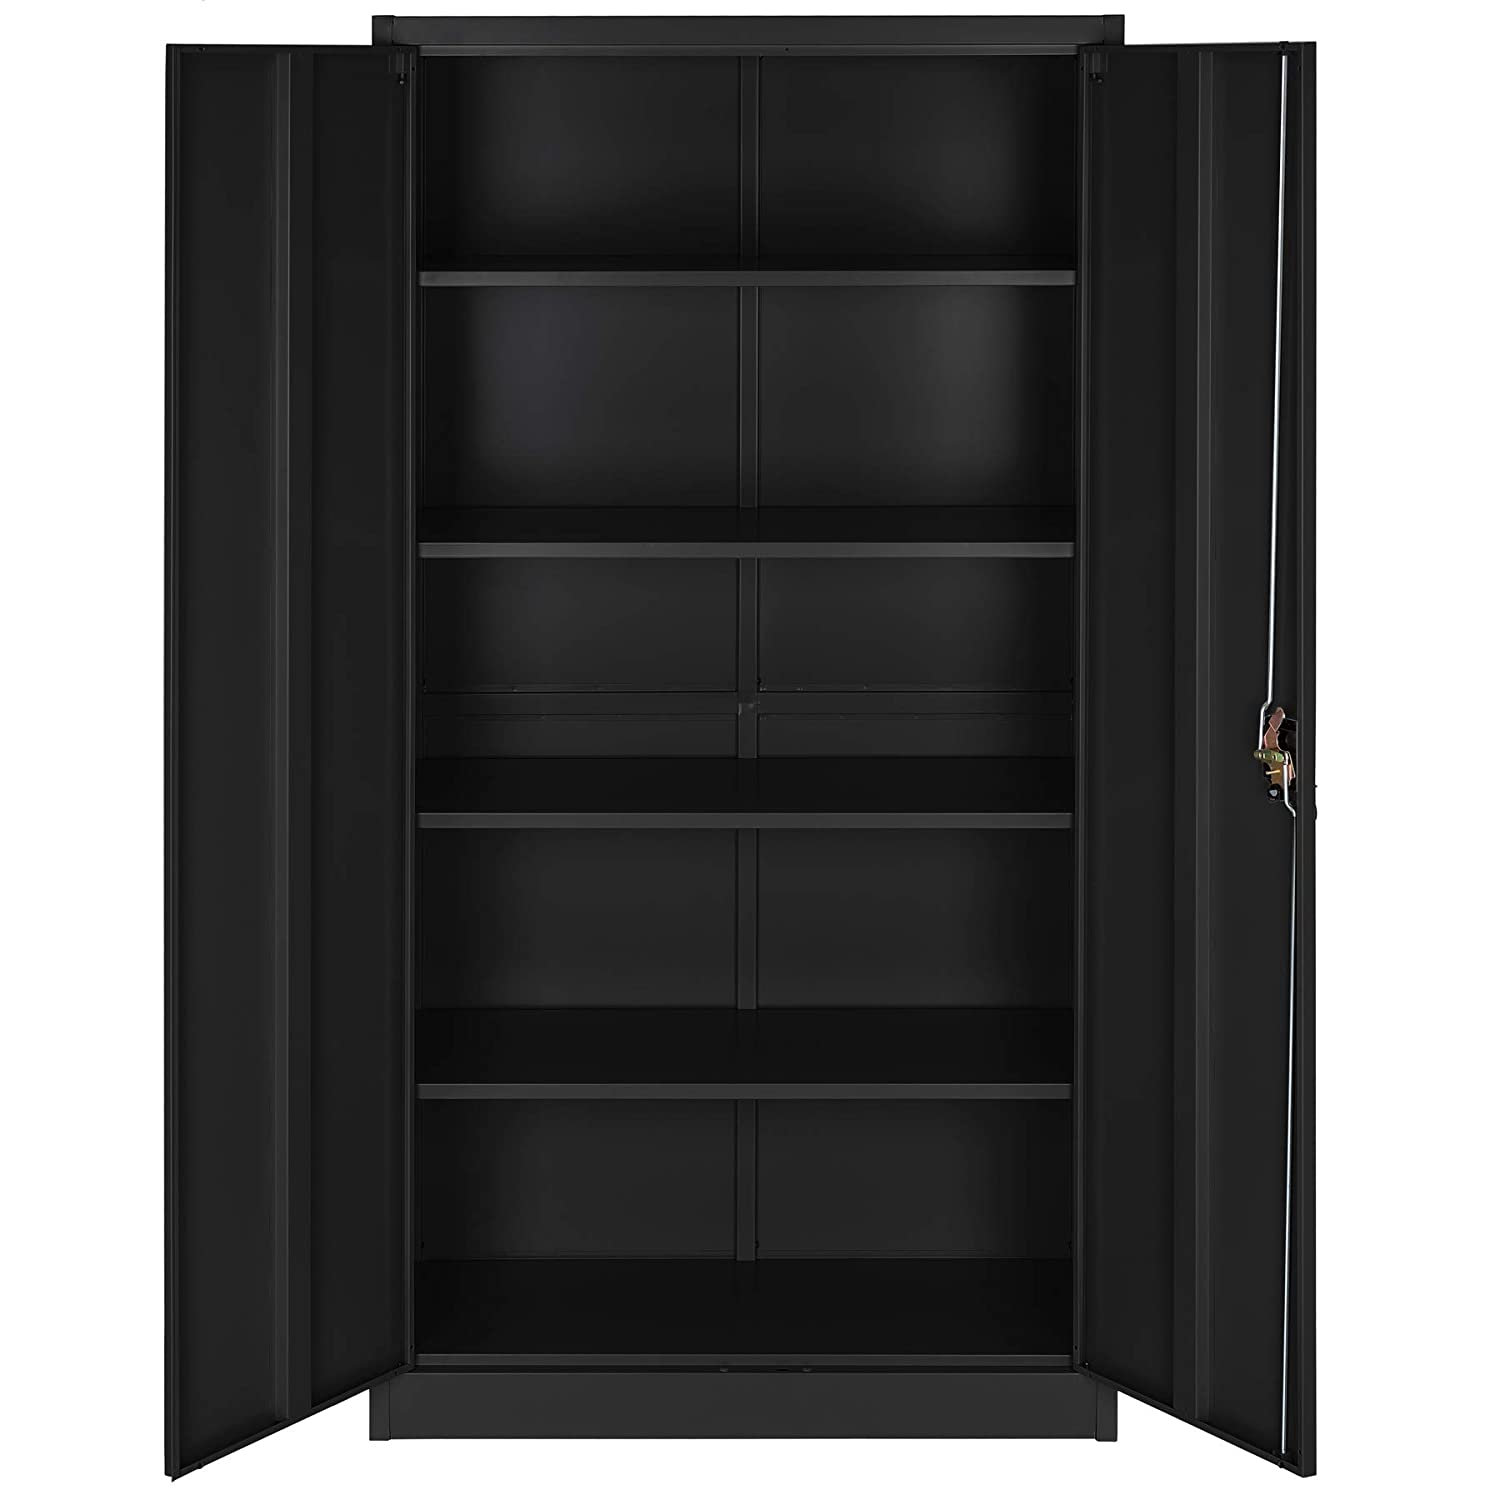 Filing cabinet black Type 2 | No. 402938 Different Models TecTake 800598 Shelves 2-door and Lock system